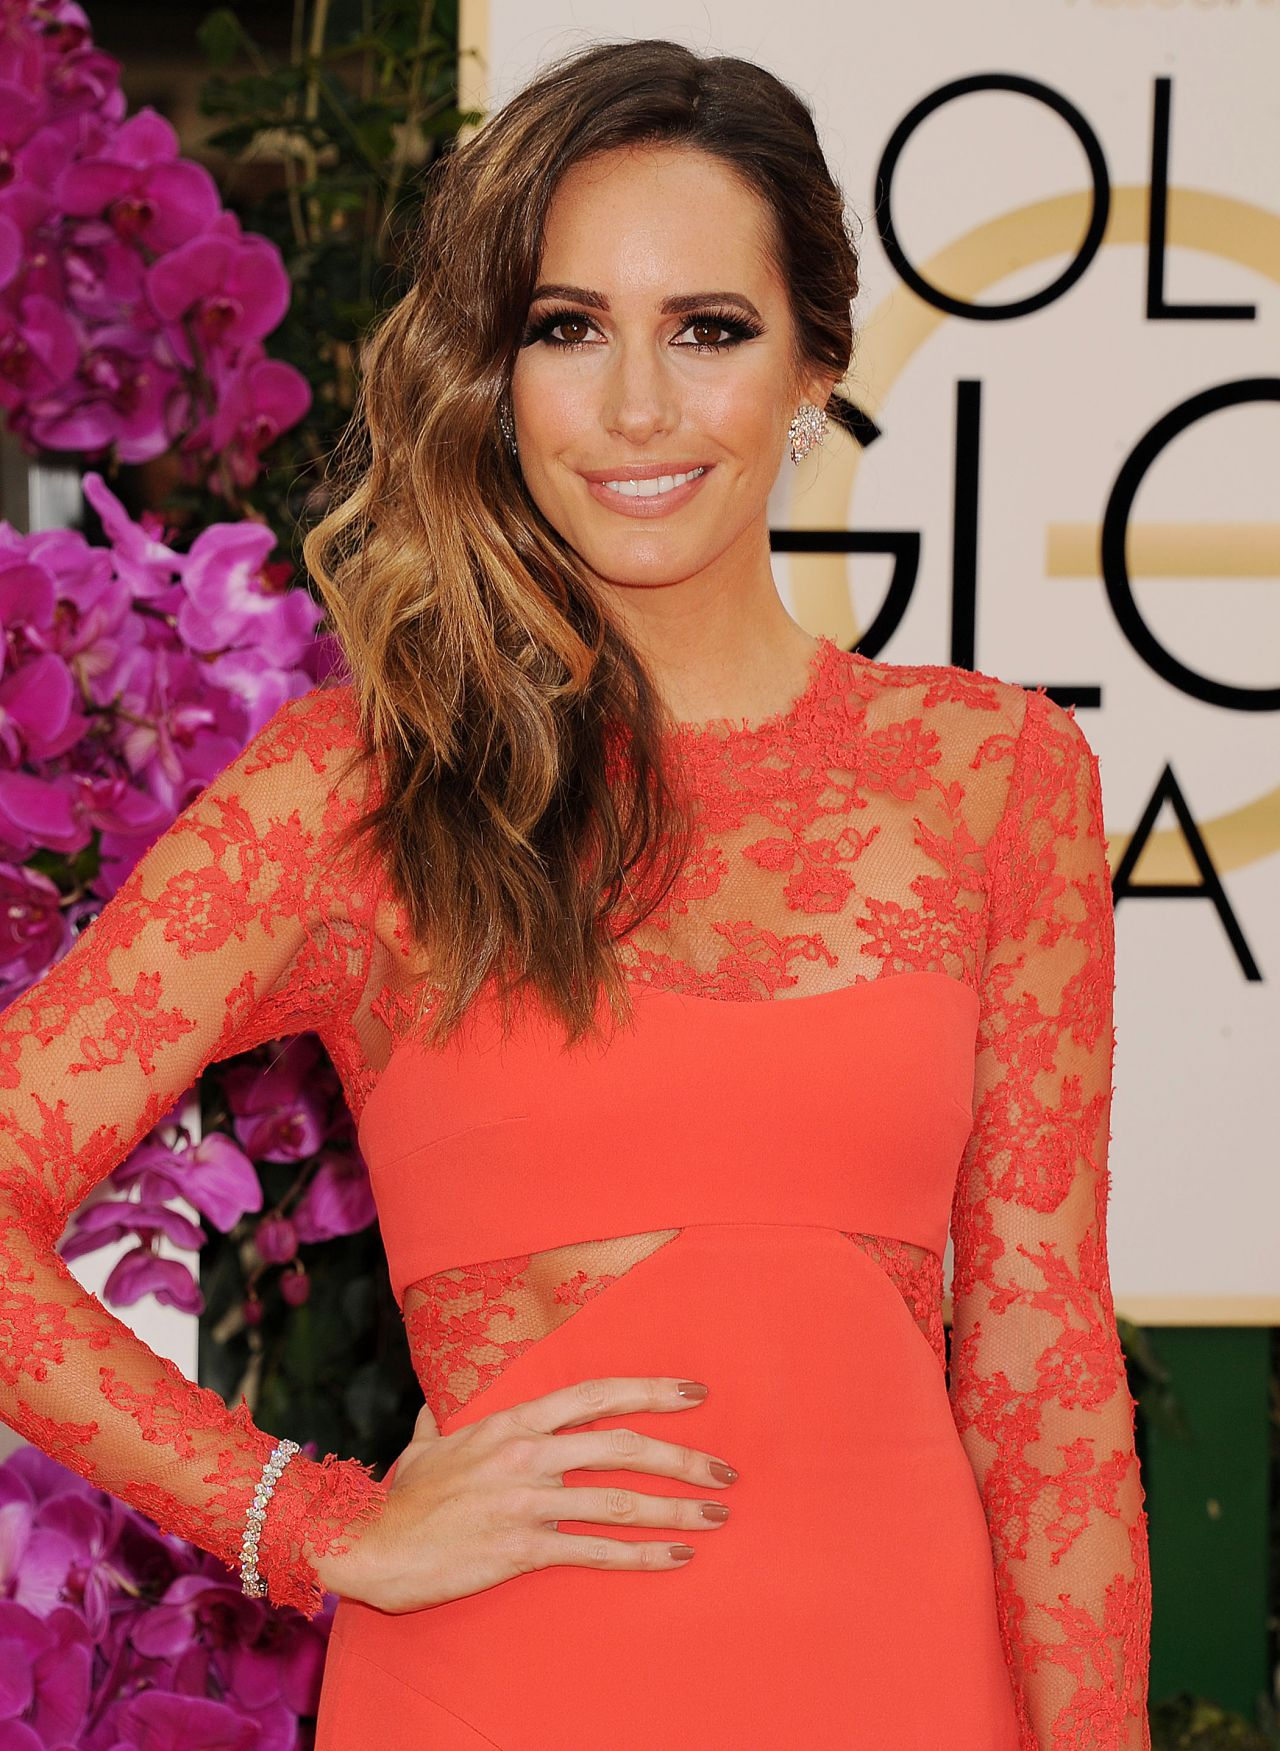 Louise Roe at 71st Annual Golden Globe Awards, January 2014